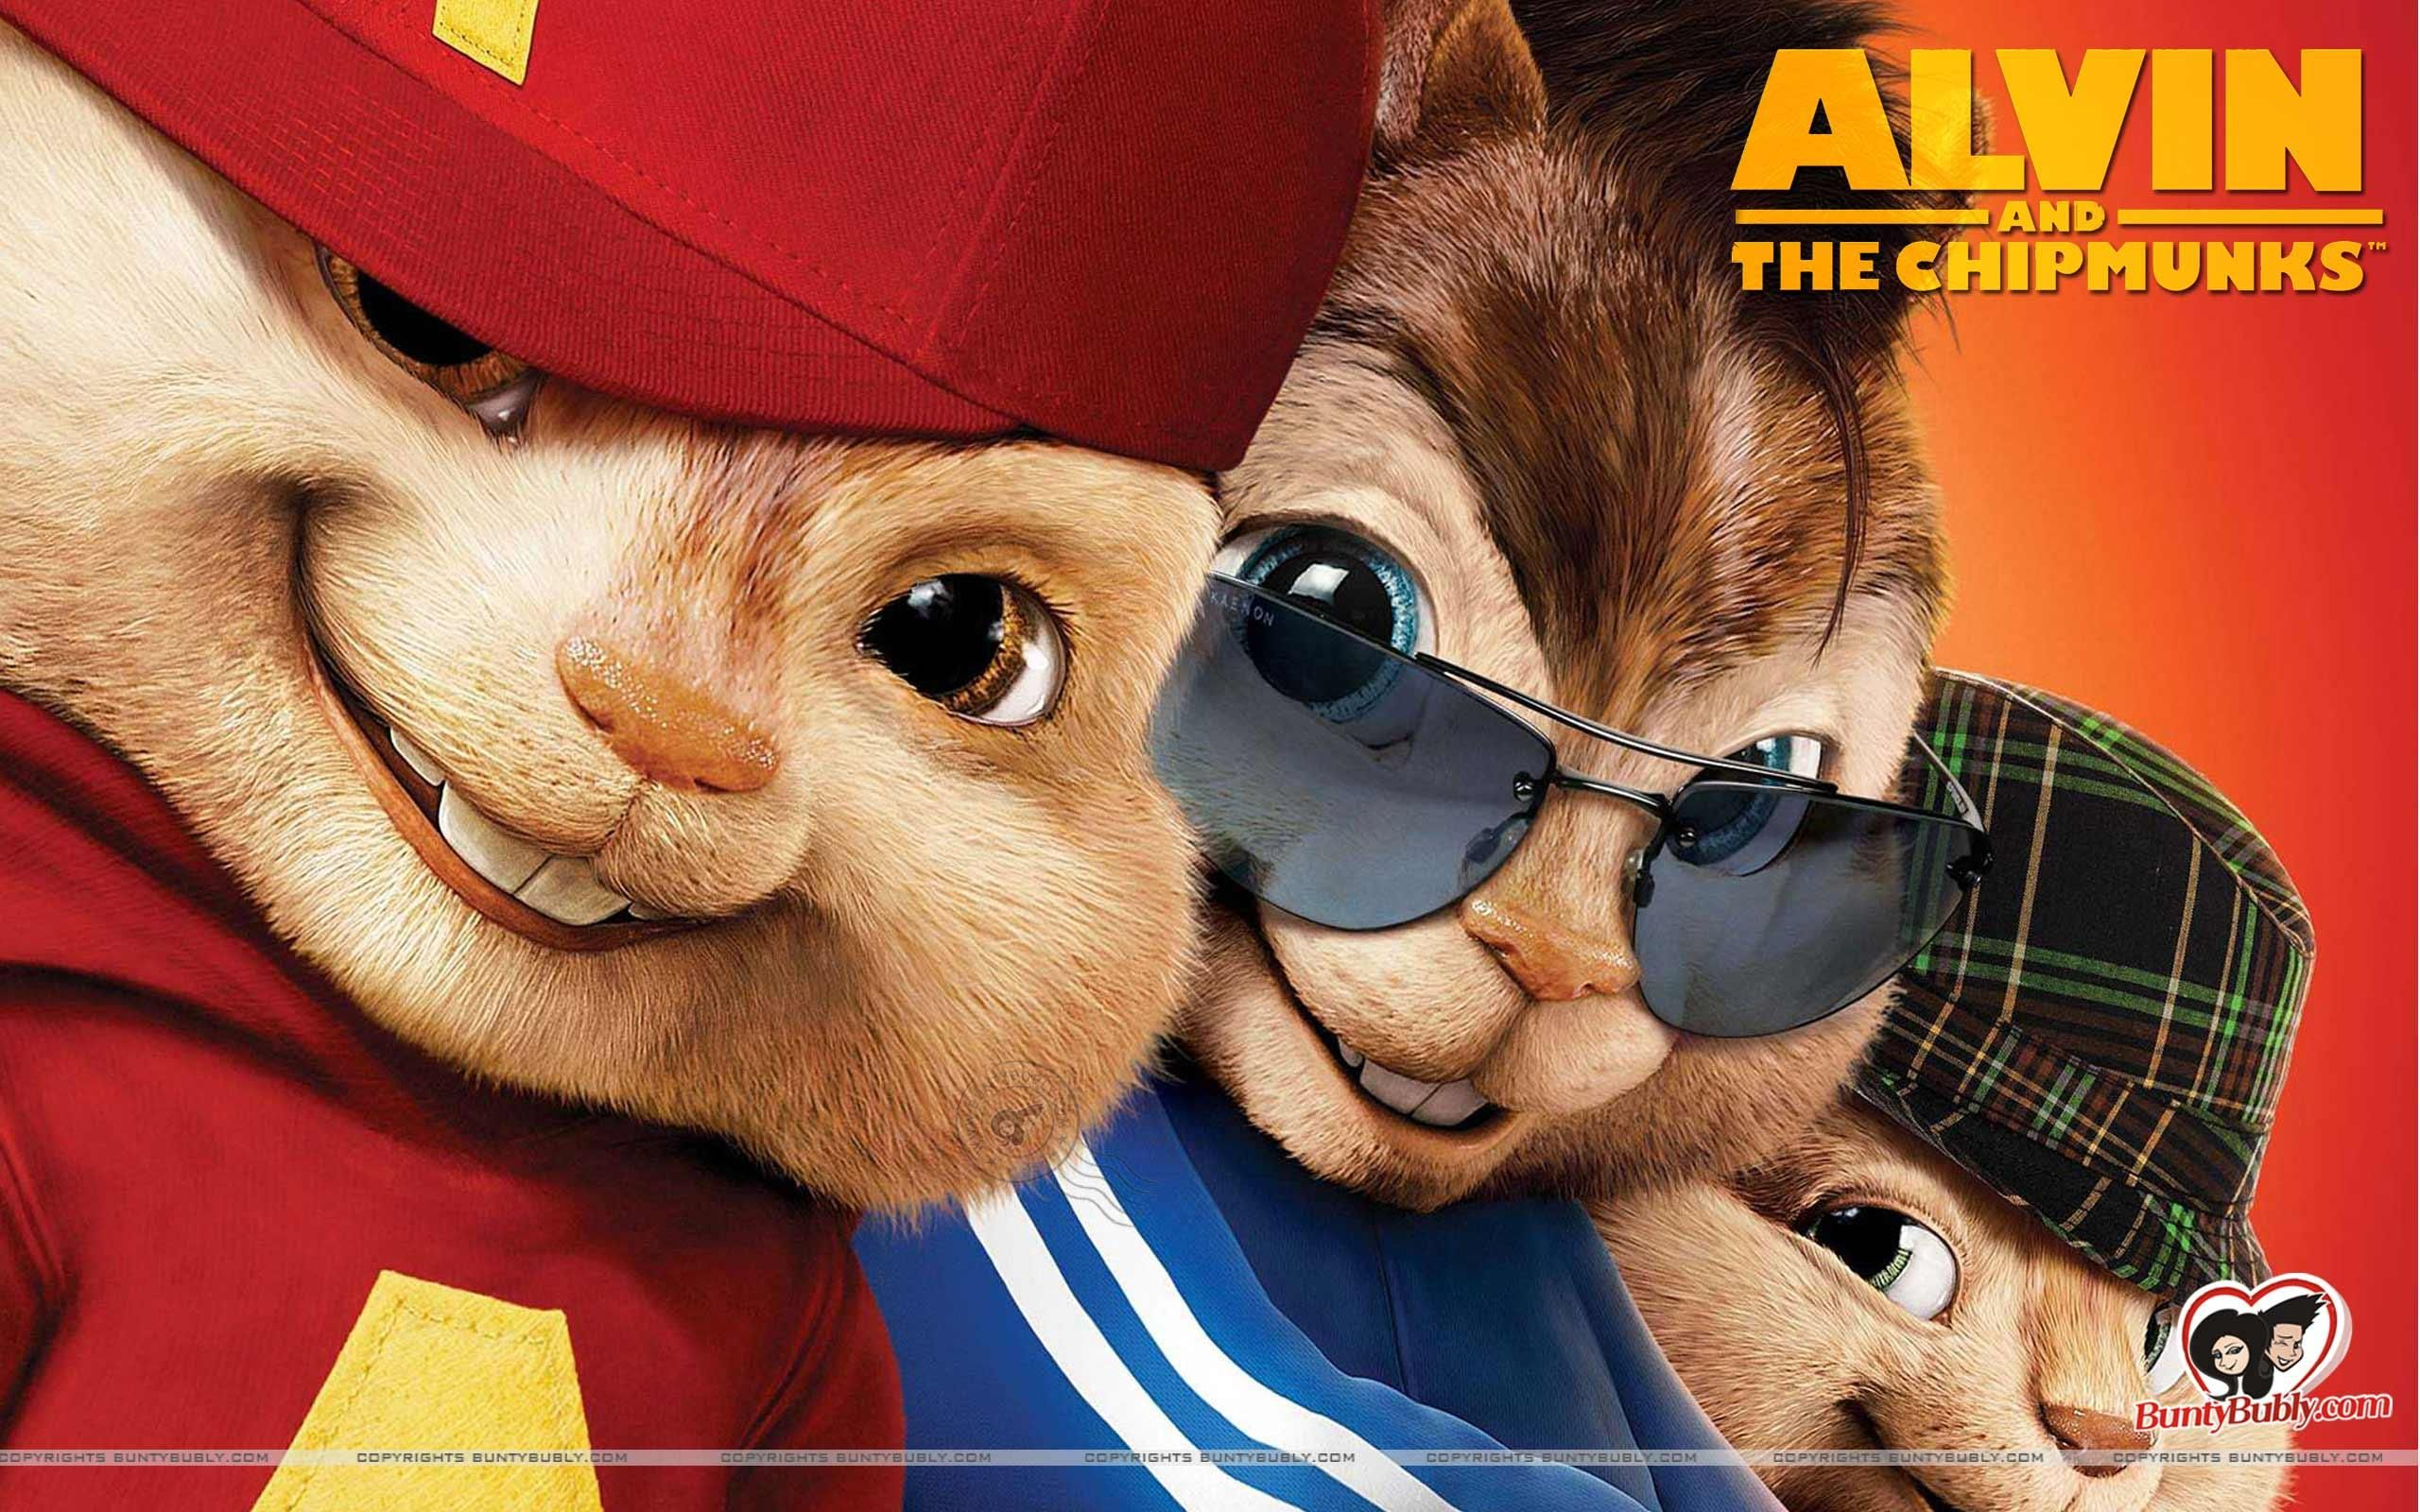 Alvin And The Chipmunks Movie Wallpaper Alvin And The Chipmunks